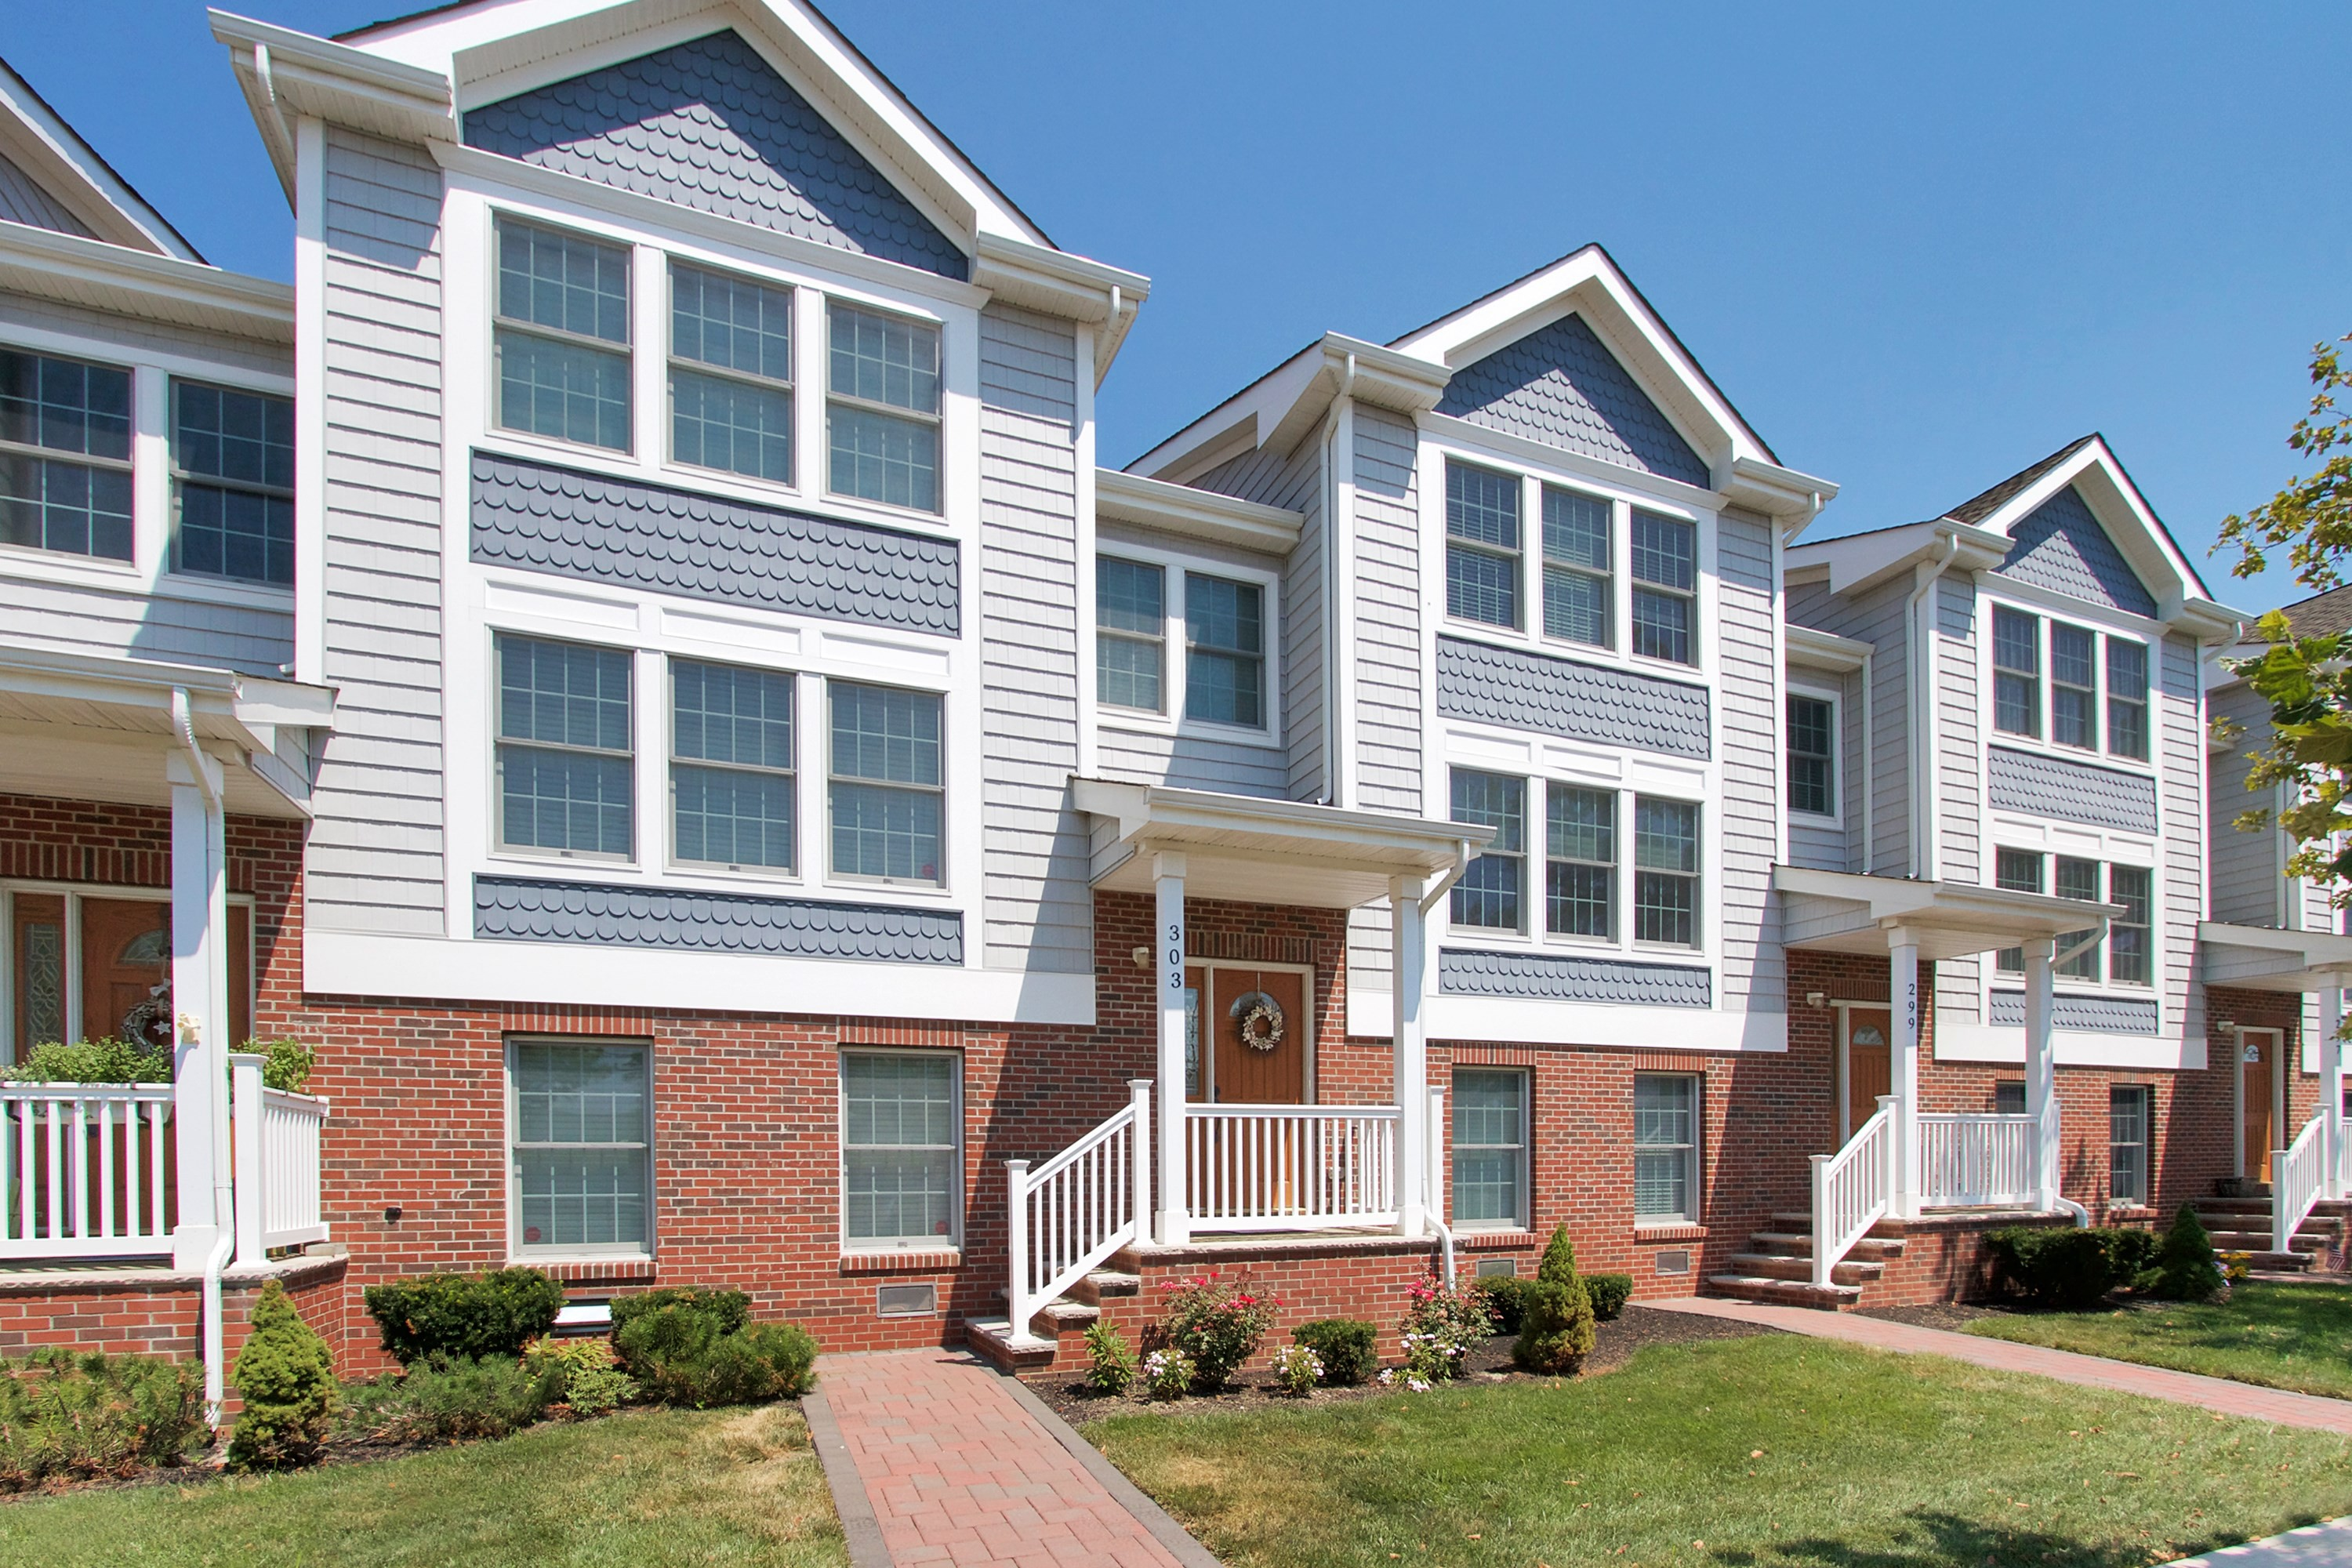 United states point pleasant beach luxury townhome for for Luxury townhomes for sale